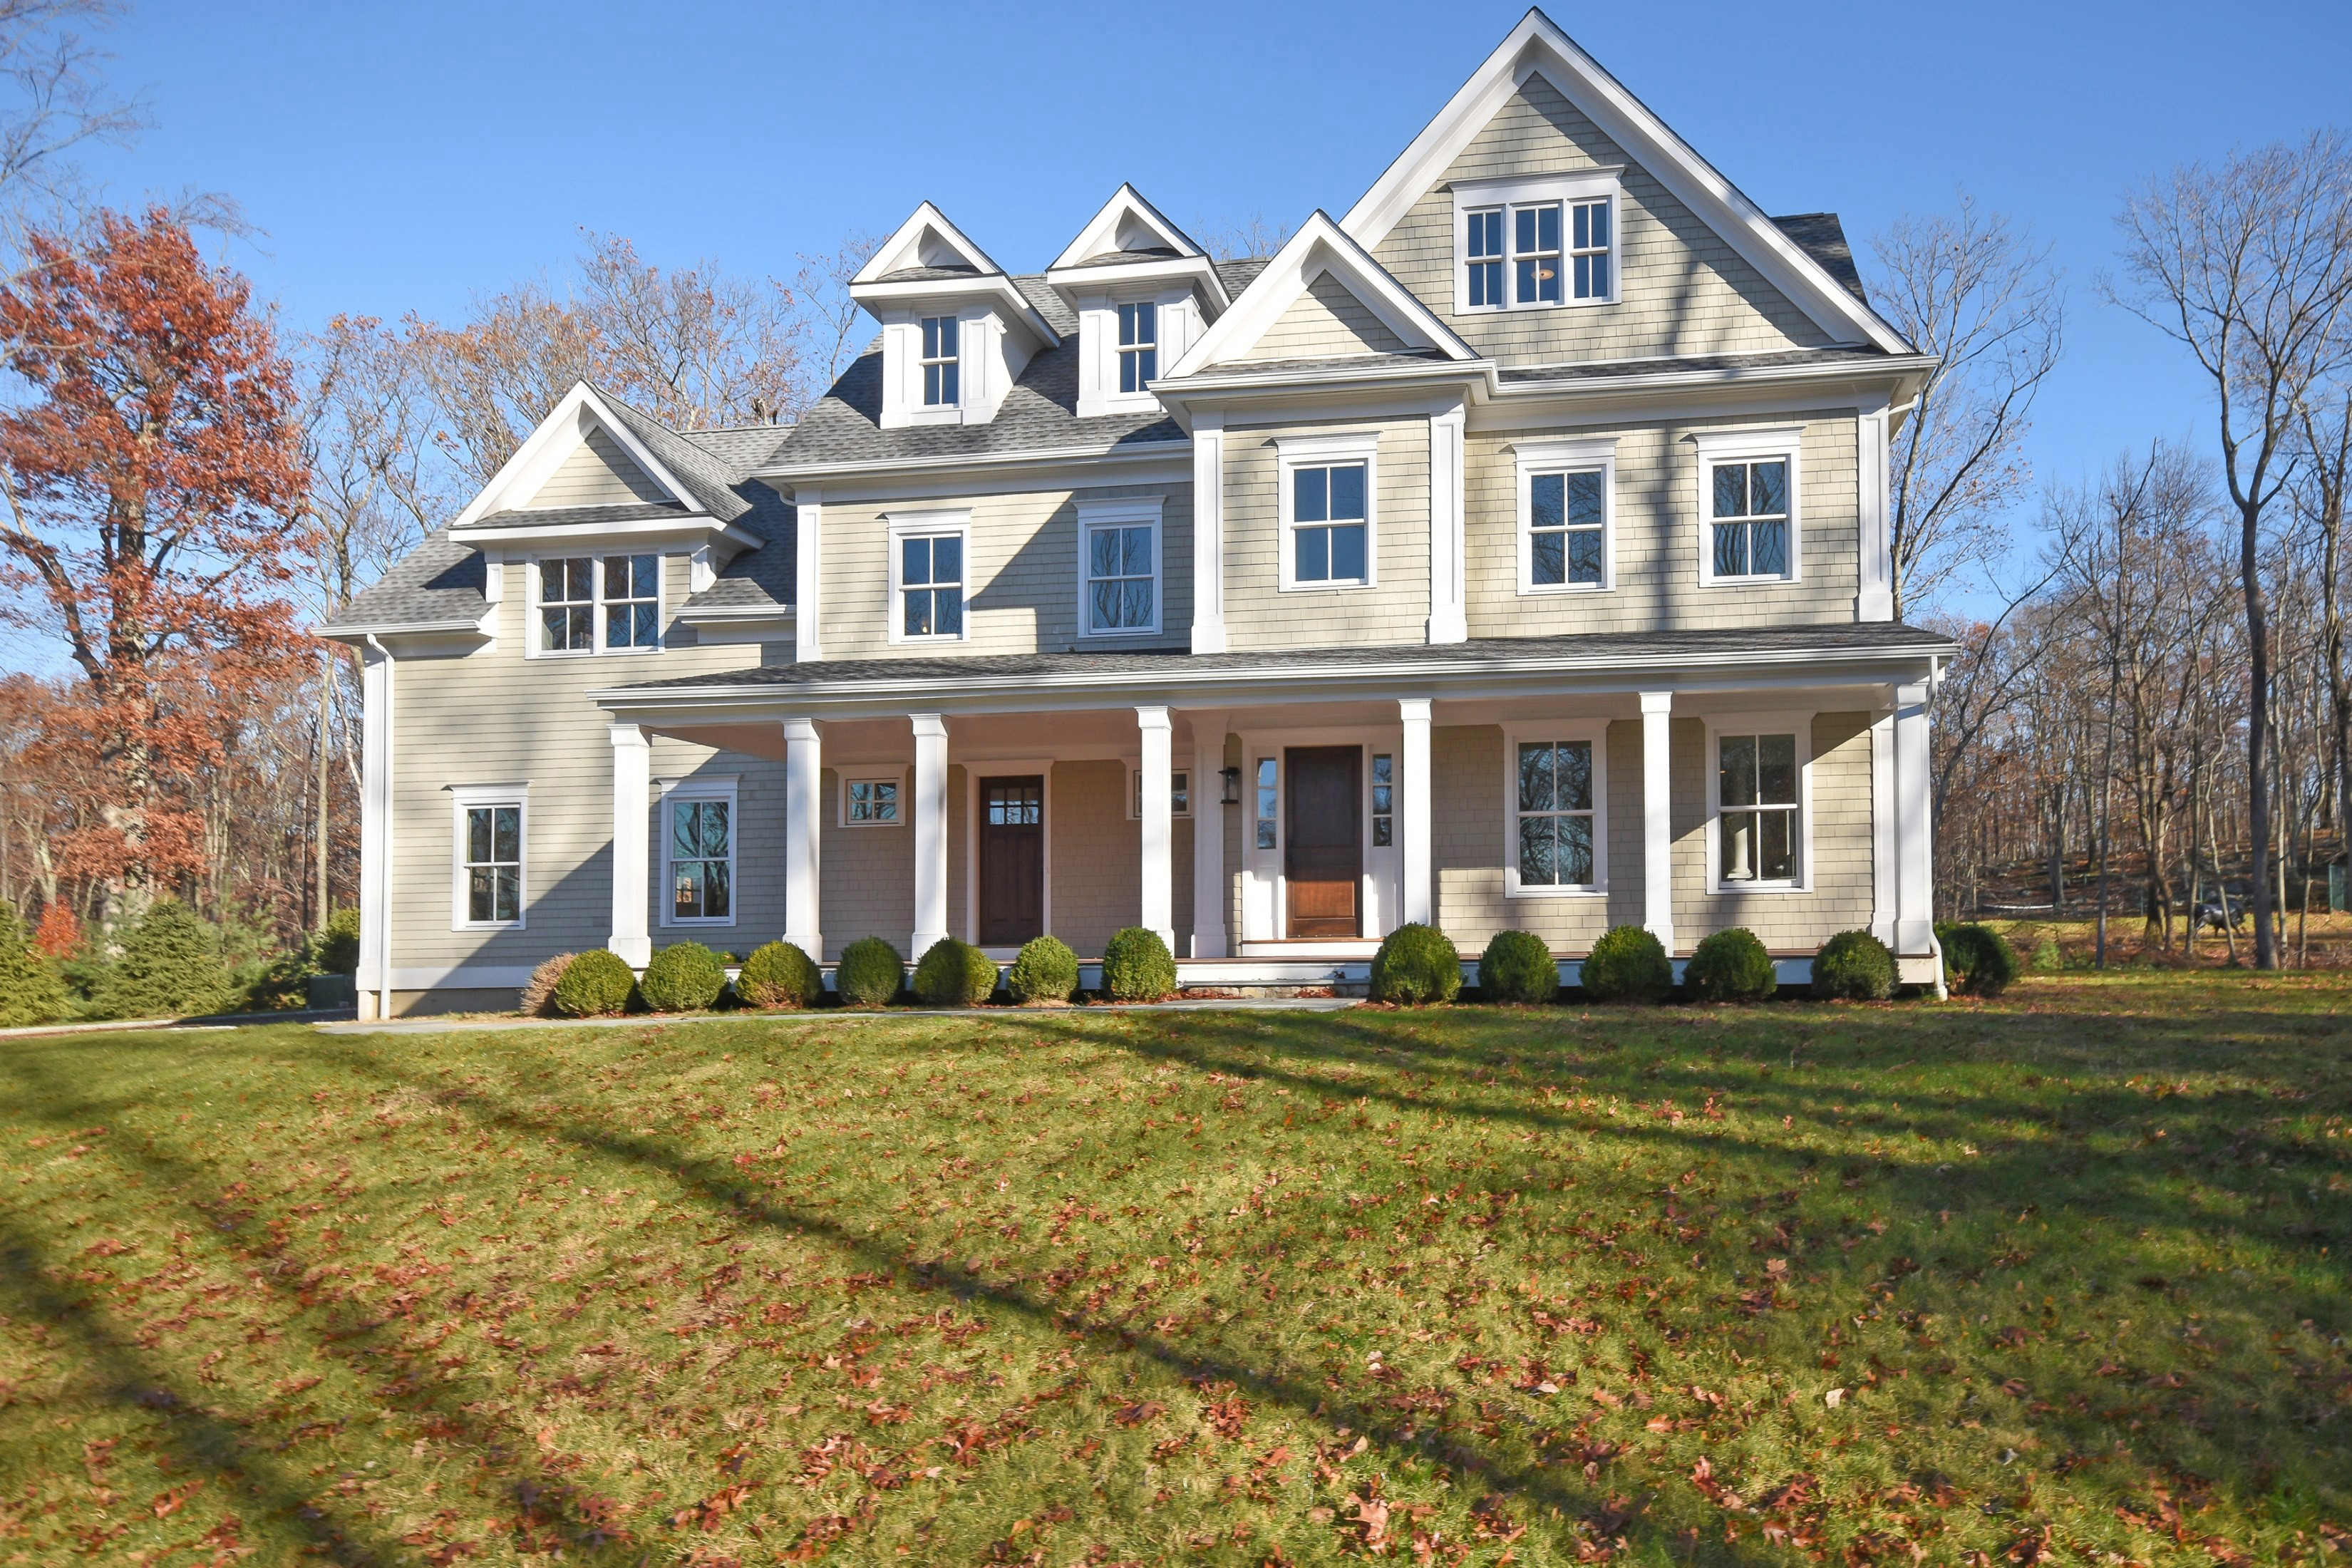 Single Family Home for Sale at 24 Hillcrest Lane Weston, Connecticut 06883 United States